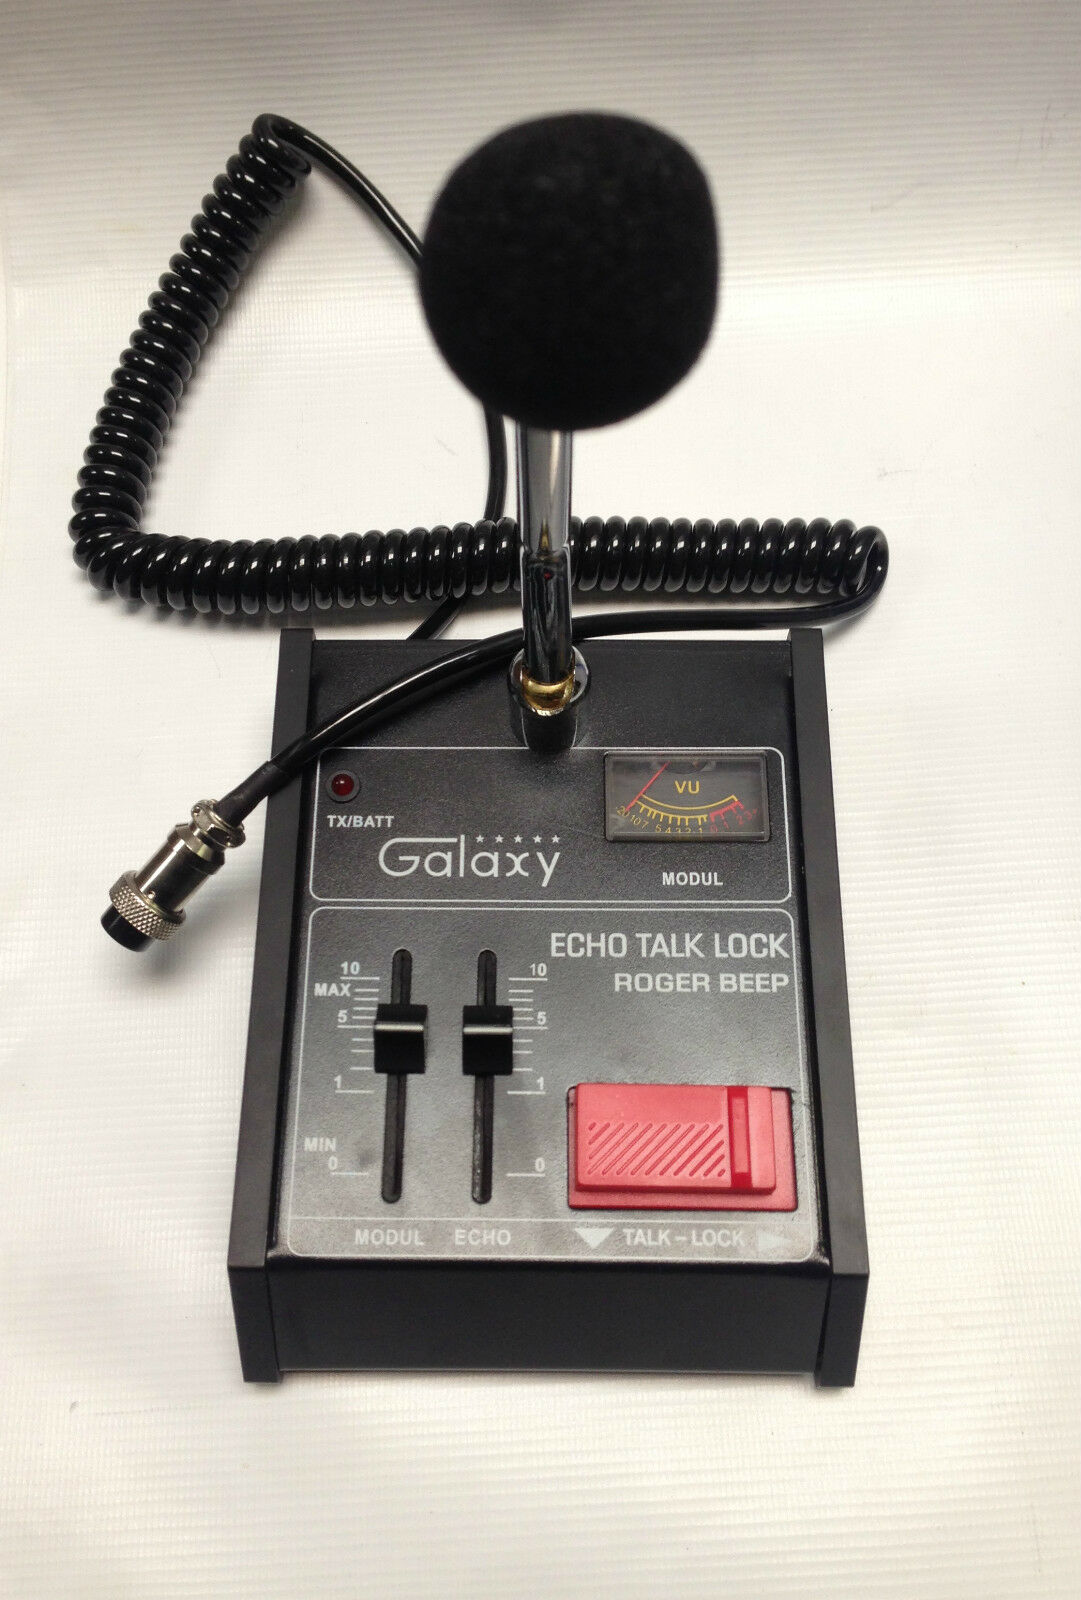 ECHO MASTER GALAXY POWER BASE 4 pin Cobra CB HAM Classic ROGER BEEP MIC . Available Now for 109.95